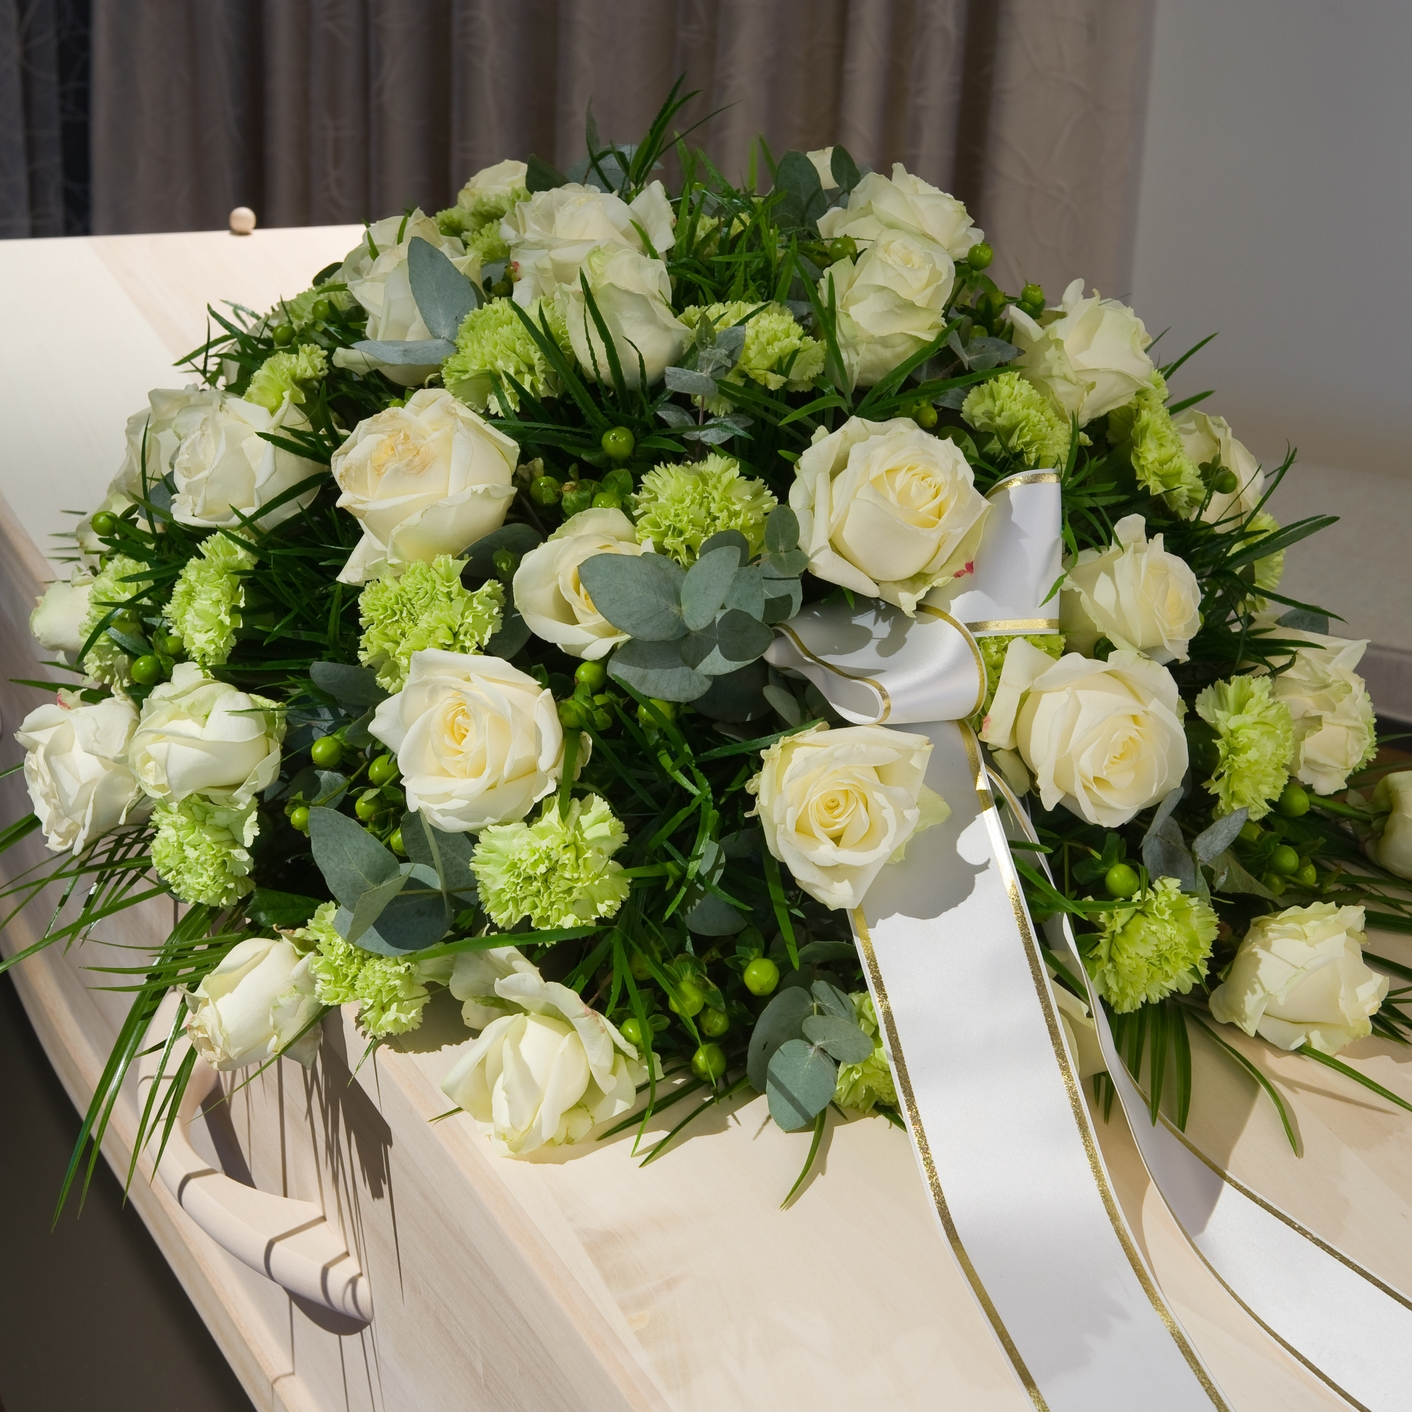 CASKET FLOWERS. - Orders for Casket flowers need to be arranged by appointment. The selection of flowers and size determine the cost. Available in many sizes.Call for custom pricing.